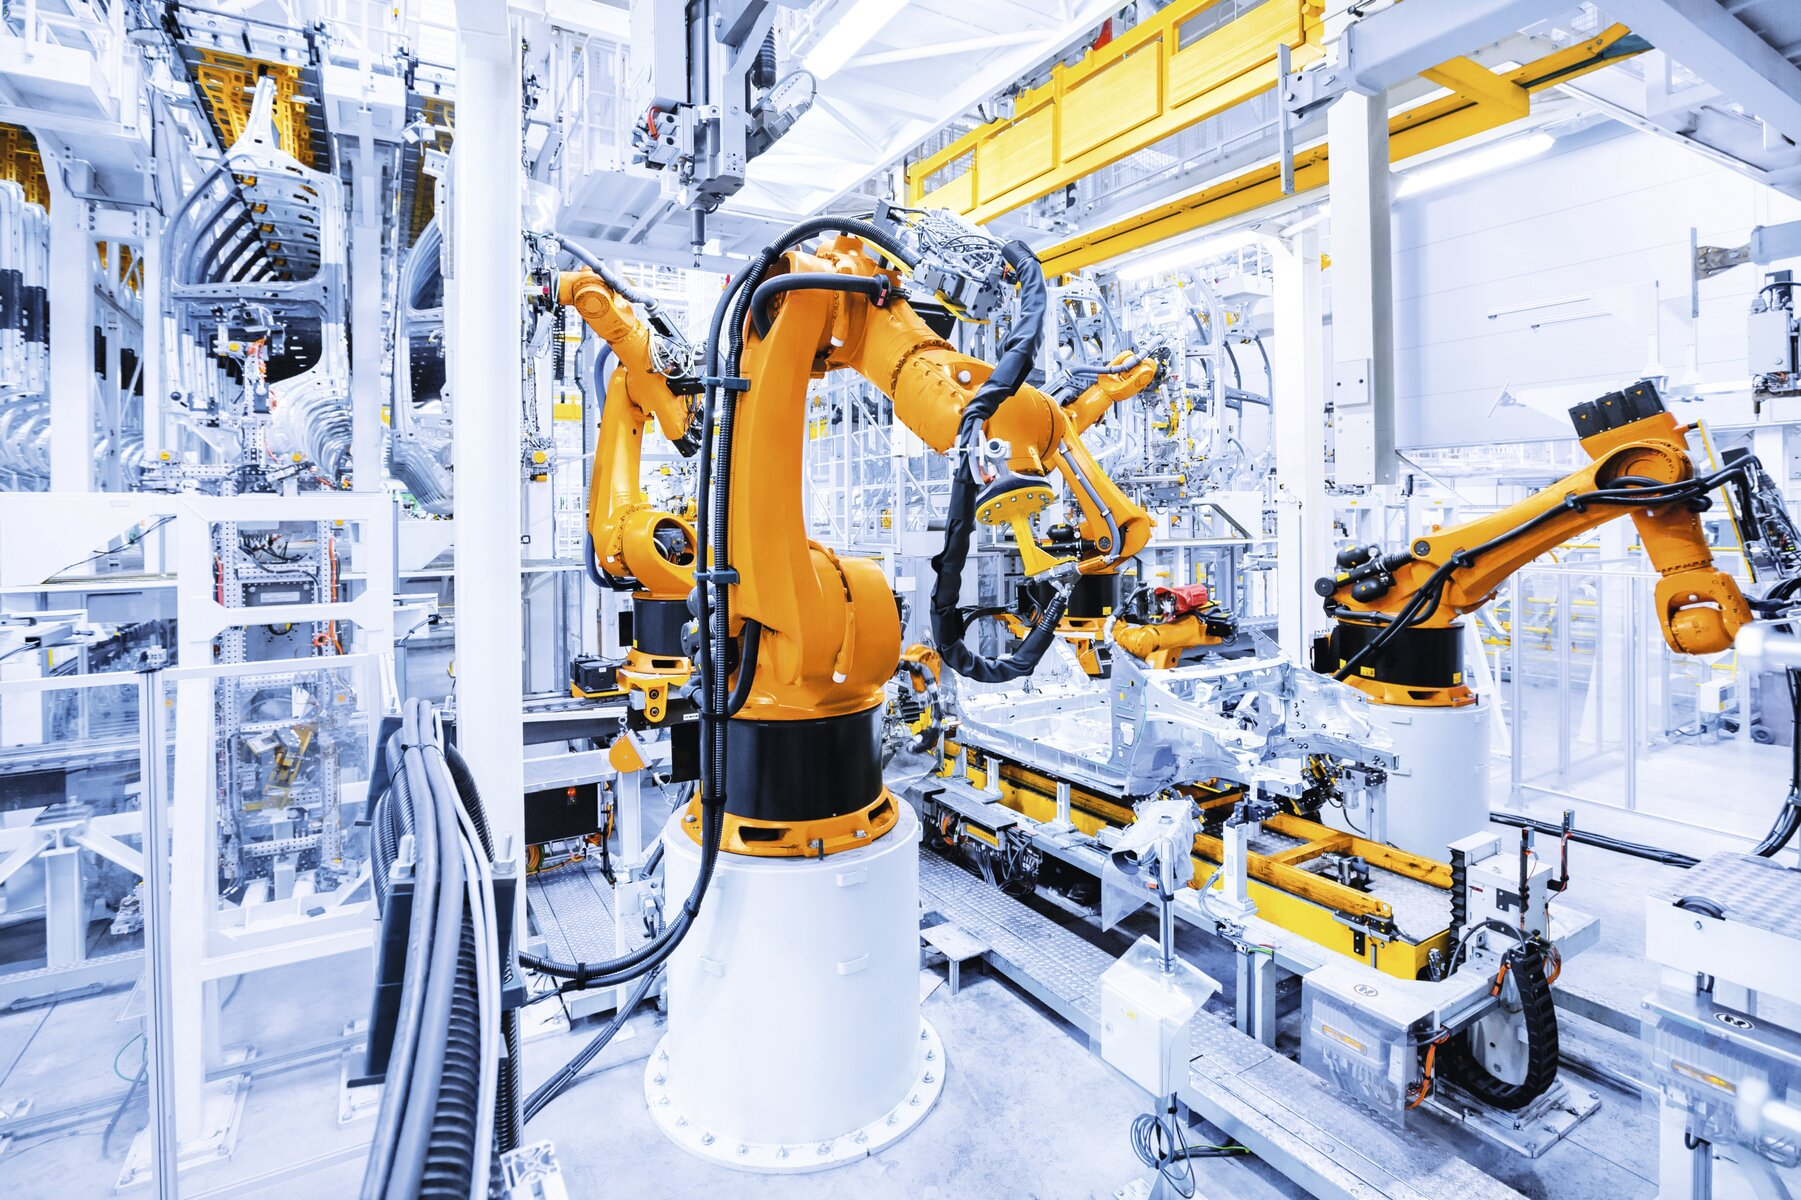 robotic vision solution, Robot Vision and Guidance Can Take Automation to the Next Level